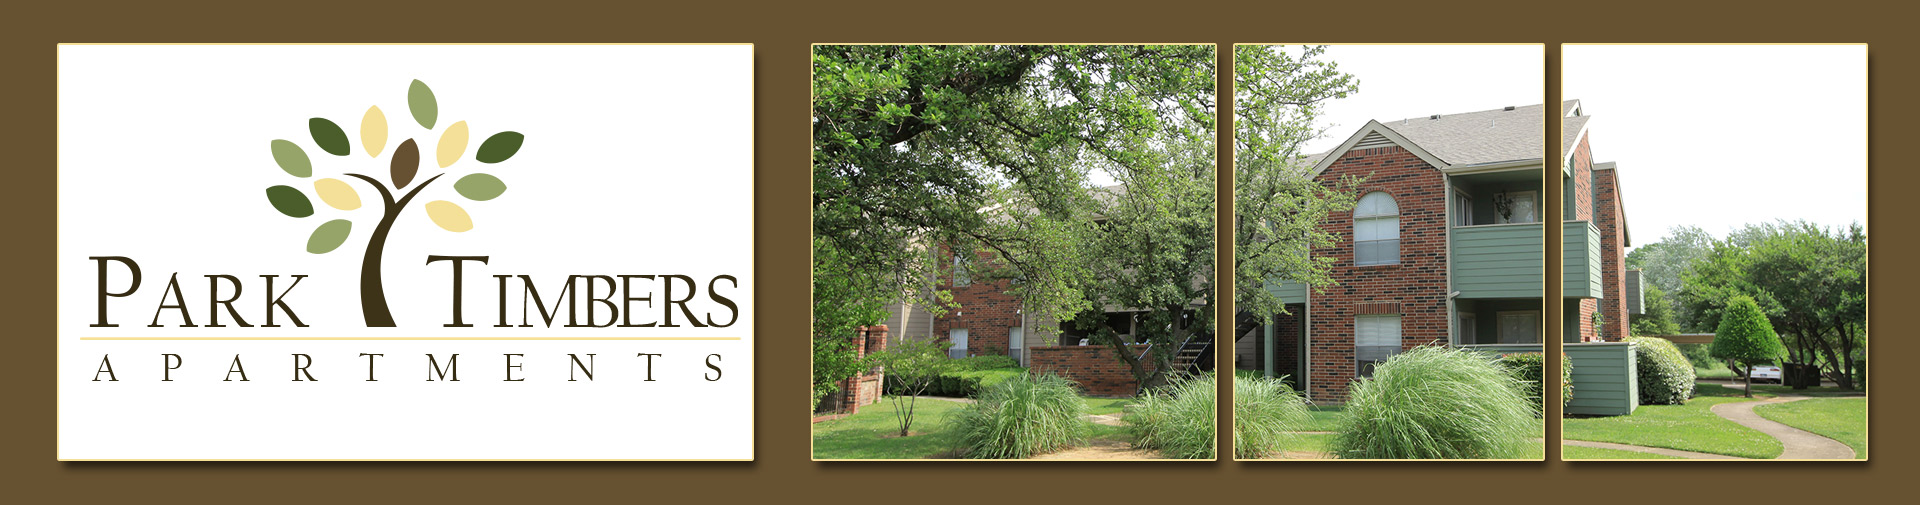 Park Timbers Apartment Homes In Lewisville Tx